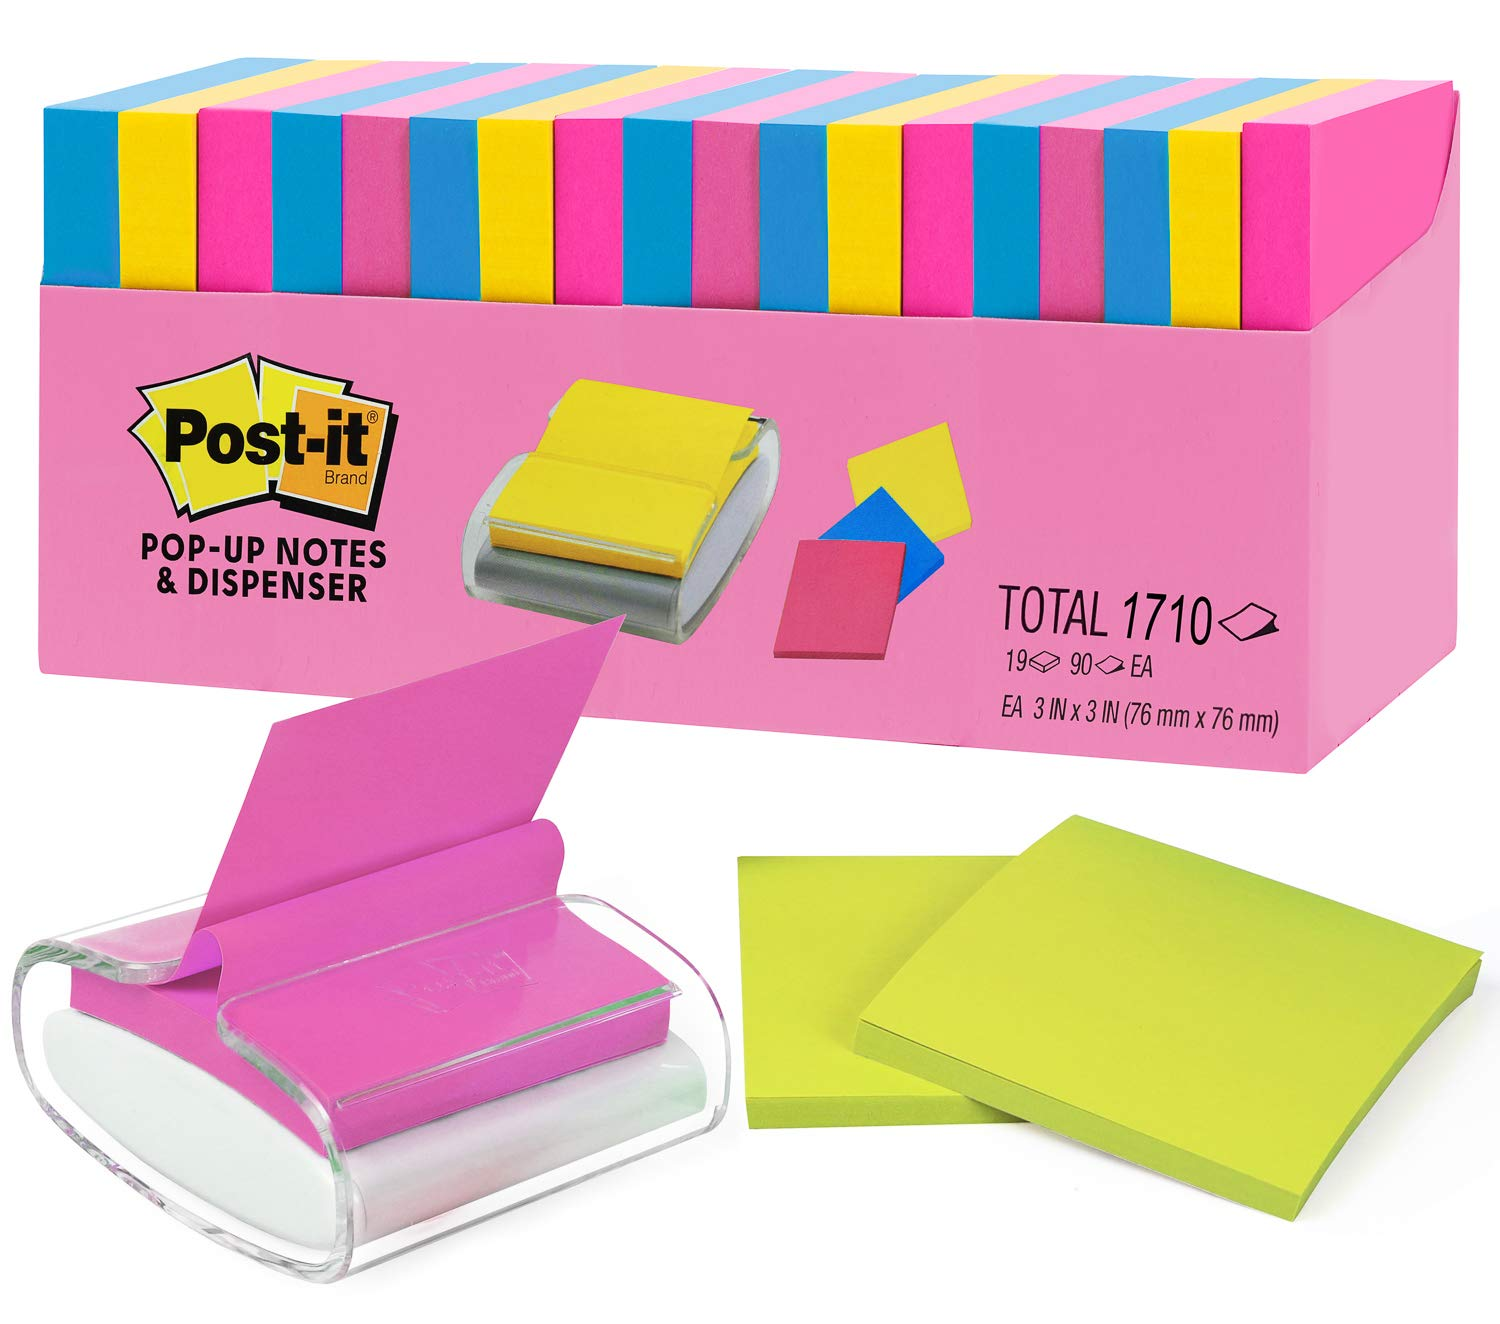 Post It Super Sticky Notes 2X The Sticking Power (3''x 3'') Value Pack 19 Individual Pads Total 1710 Sheets with Pop-up Notes Dispenser.